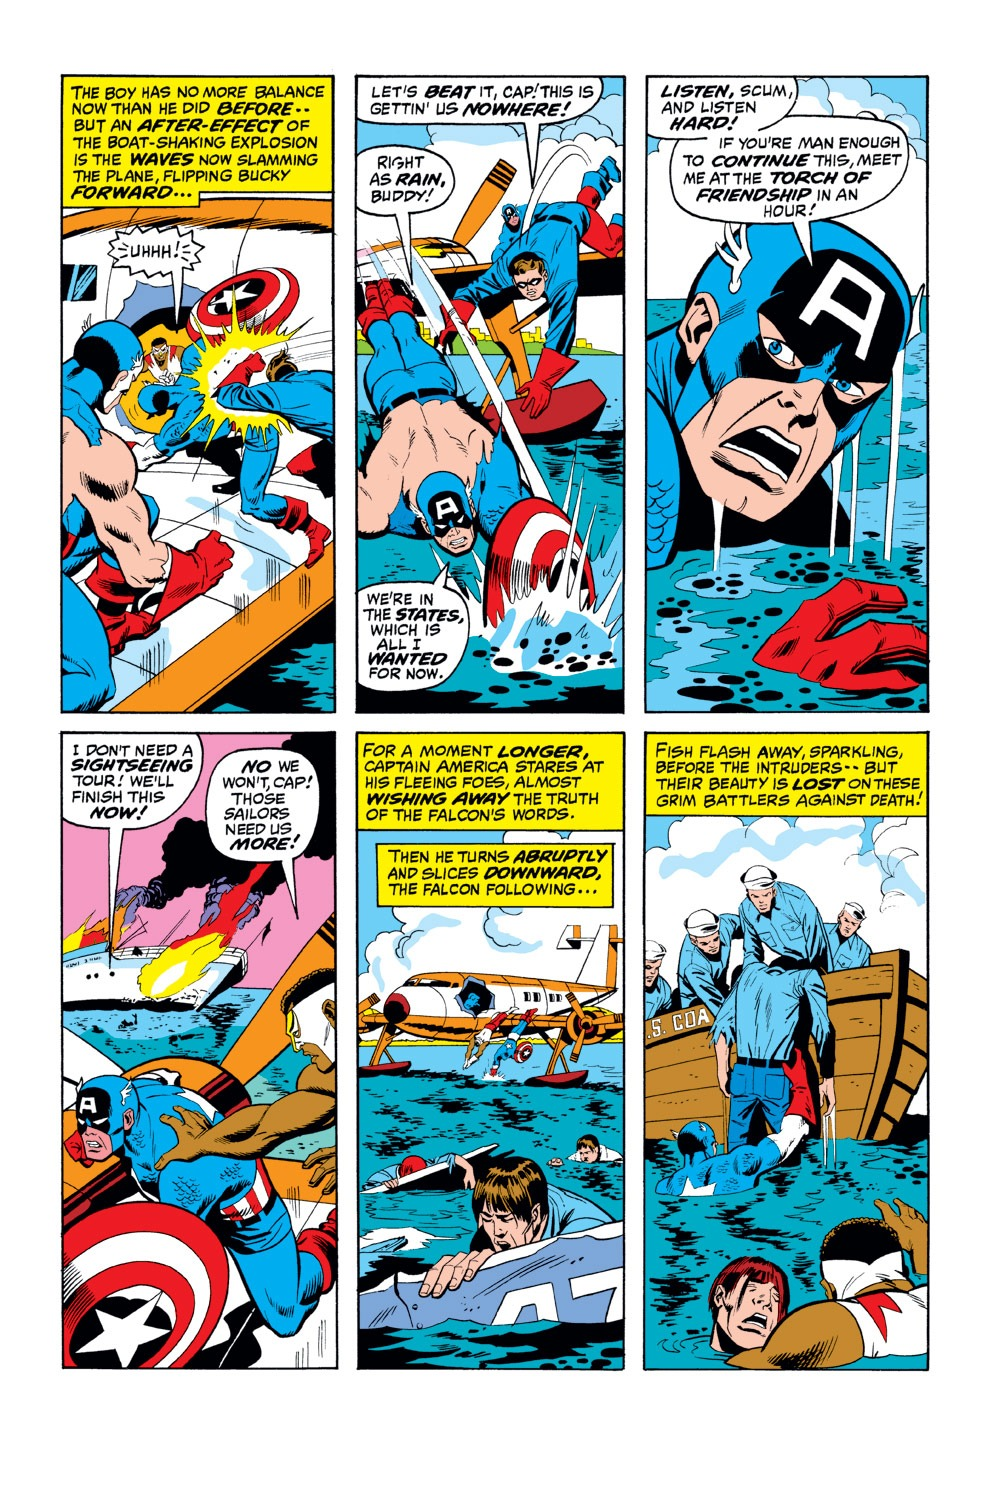 Captain America 1968 Issue 156 Read Captain America 1968 Issue 156 Comic Online In High Quality In 2020